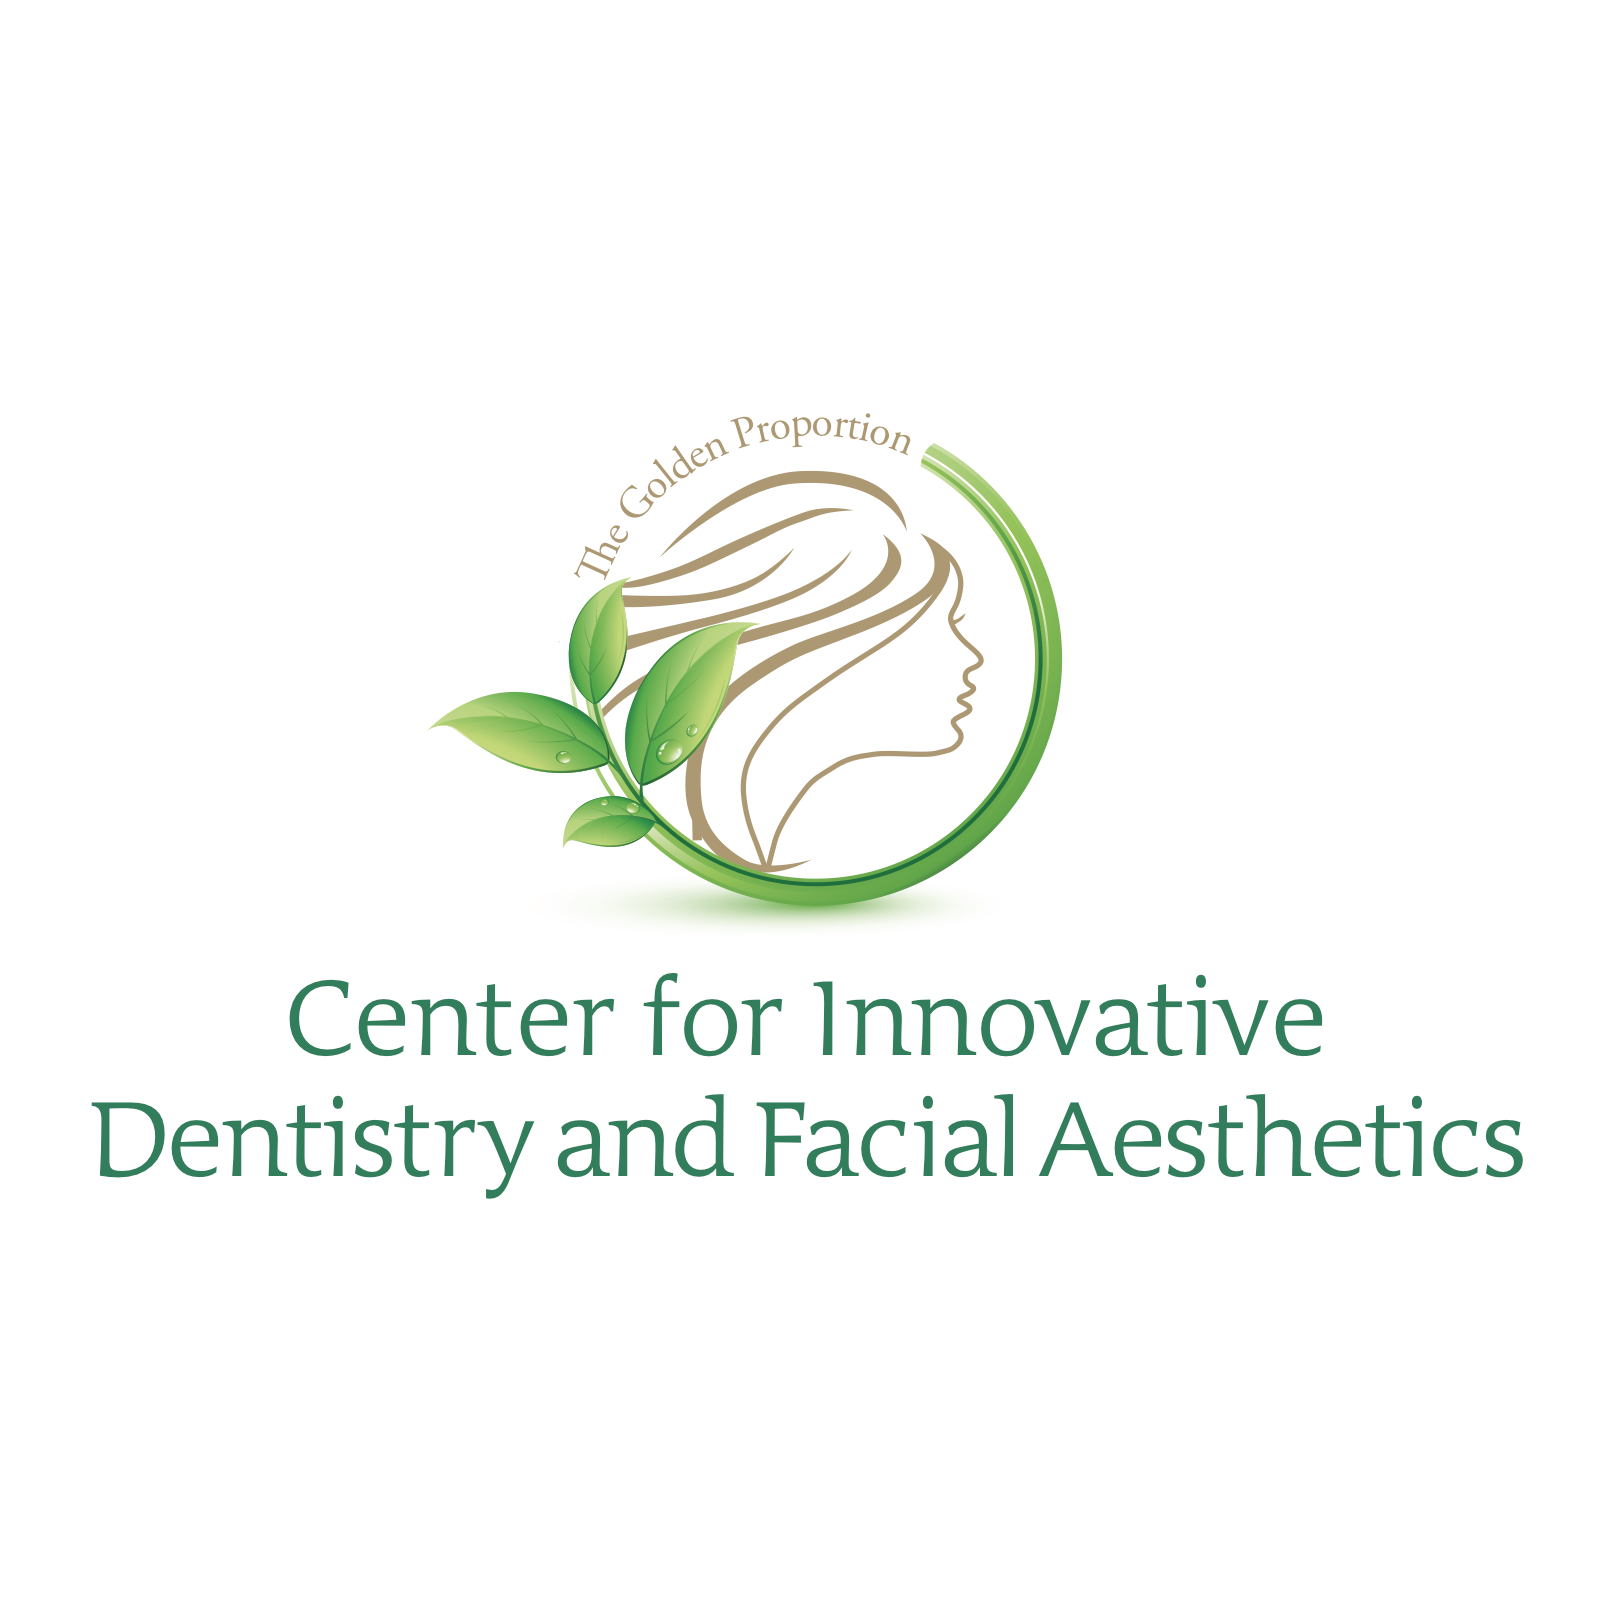 The Center for Innovative Dentistry and Facial Aesthetics